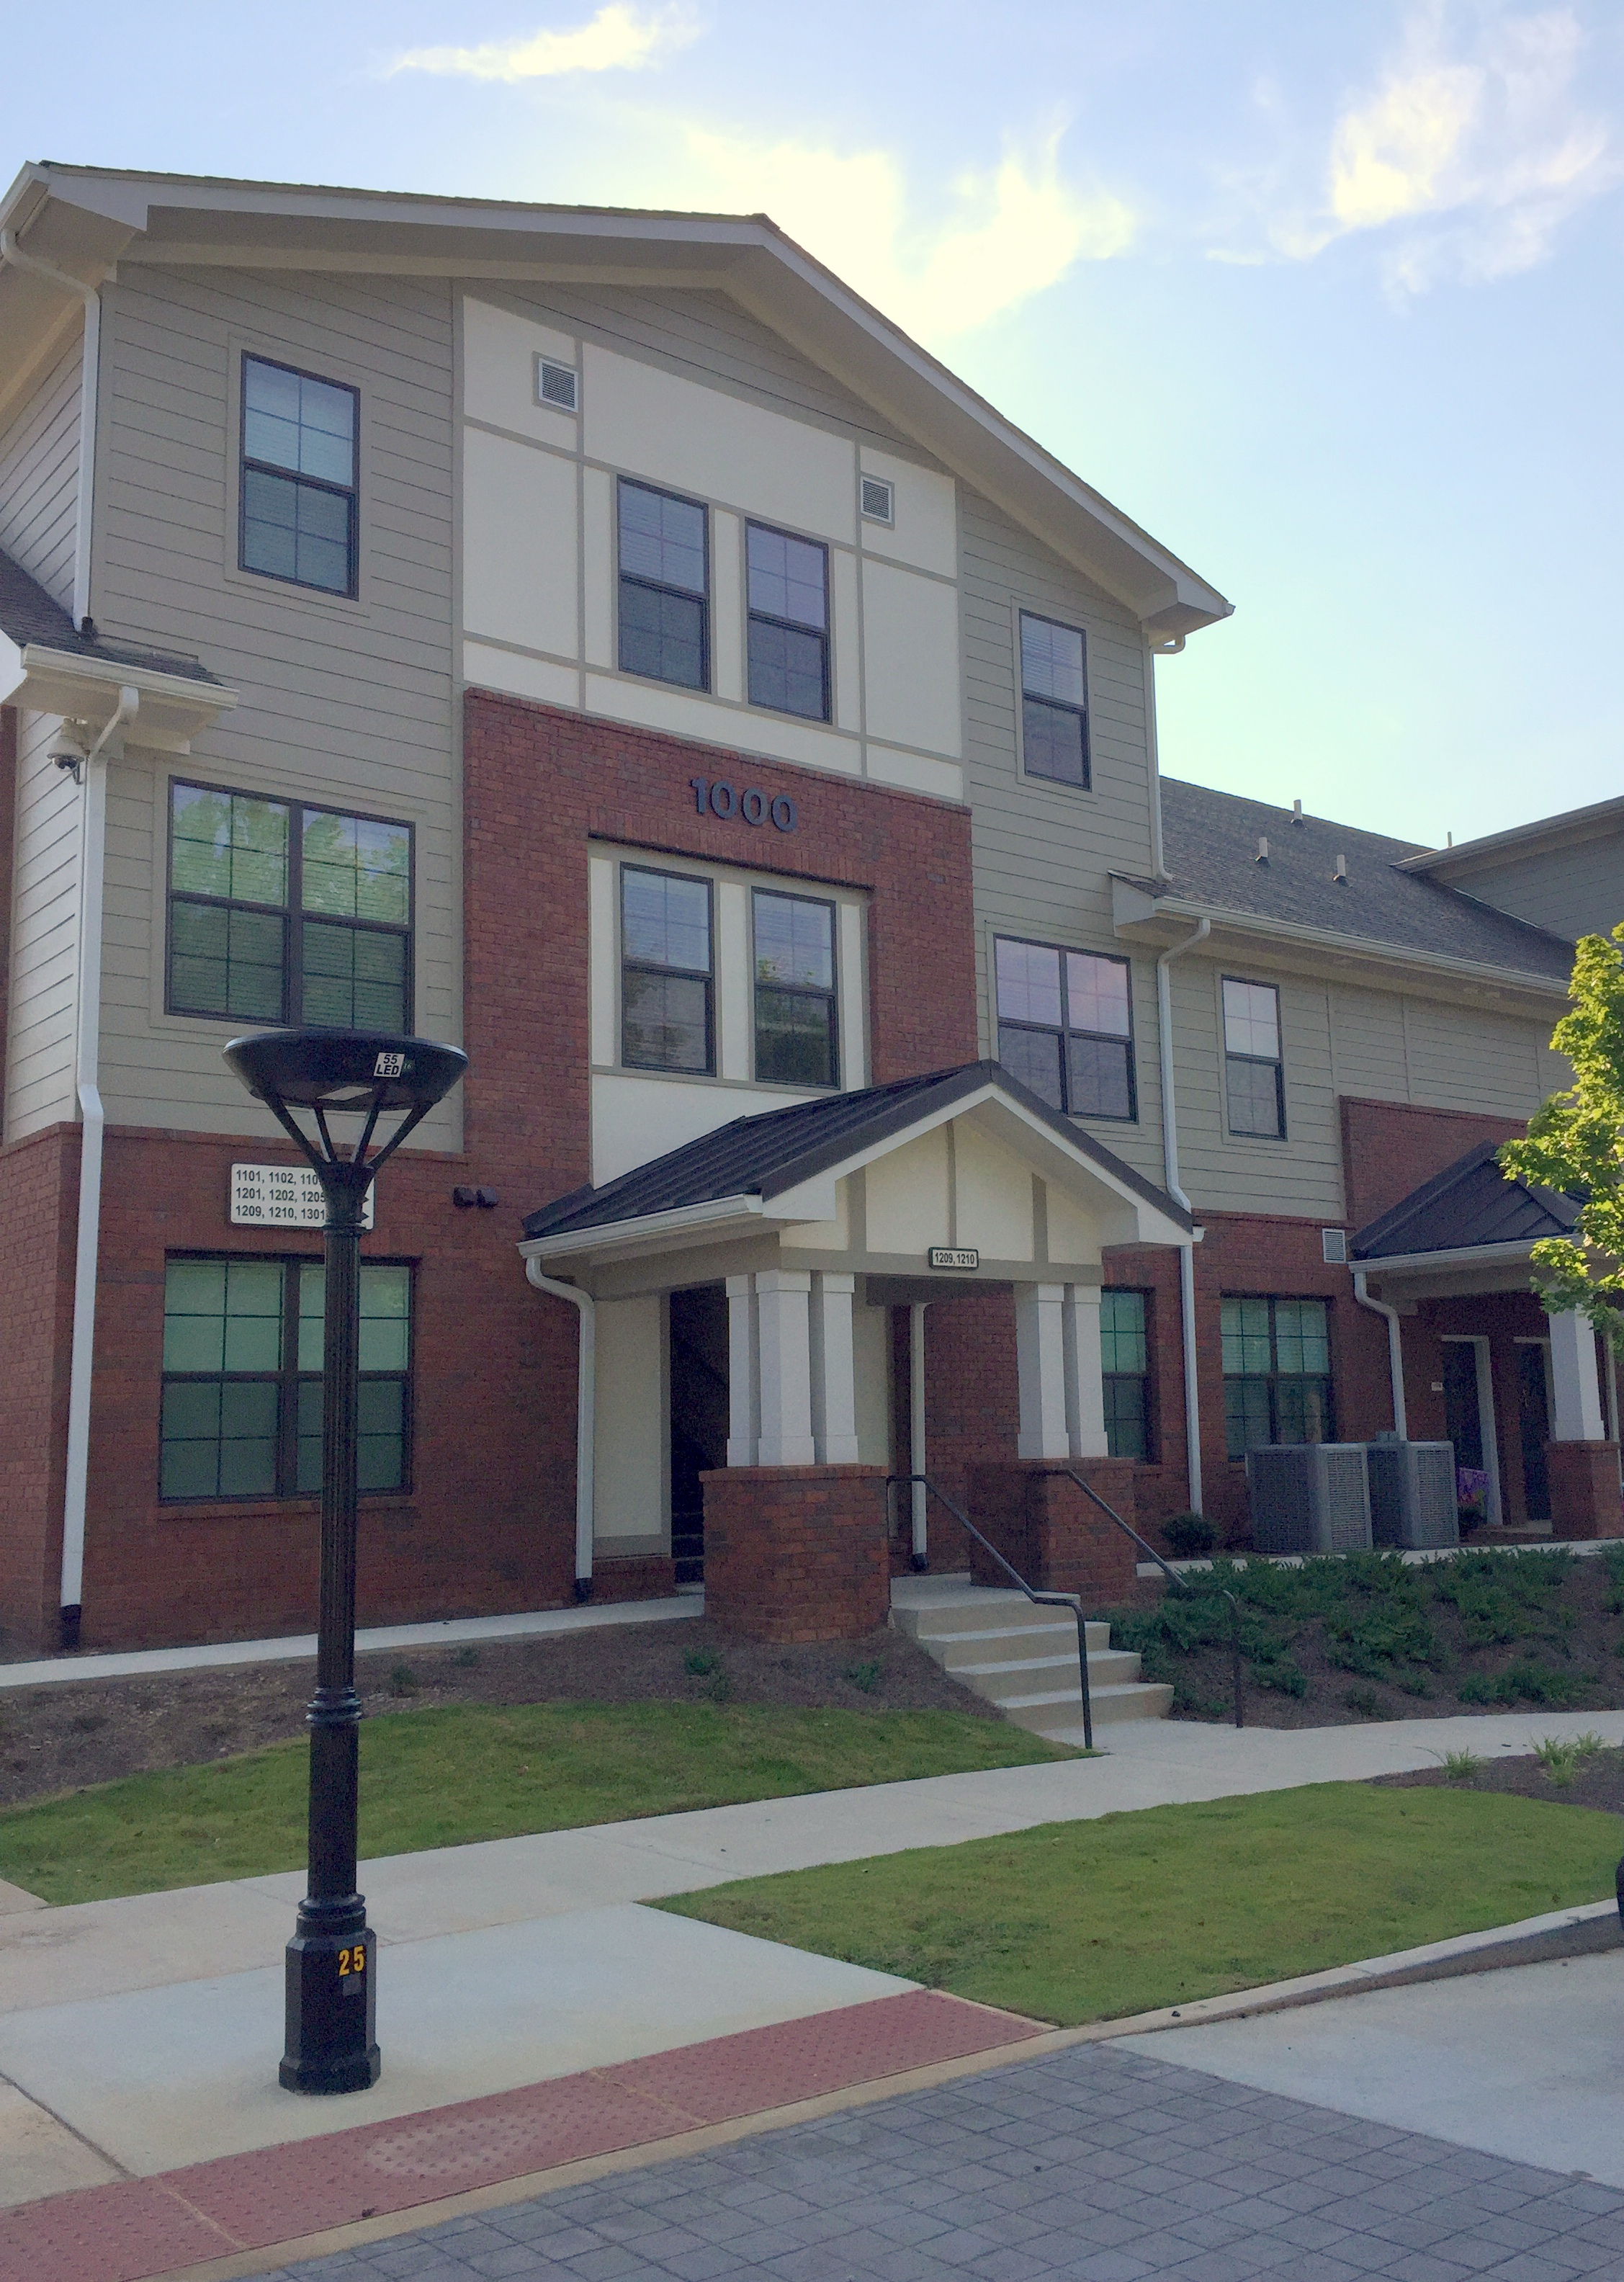 Decatur housing development offers truly affordable residences